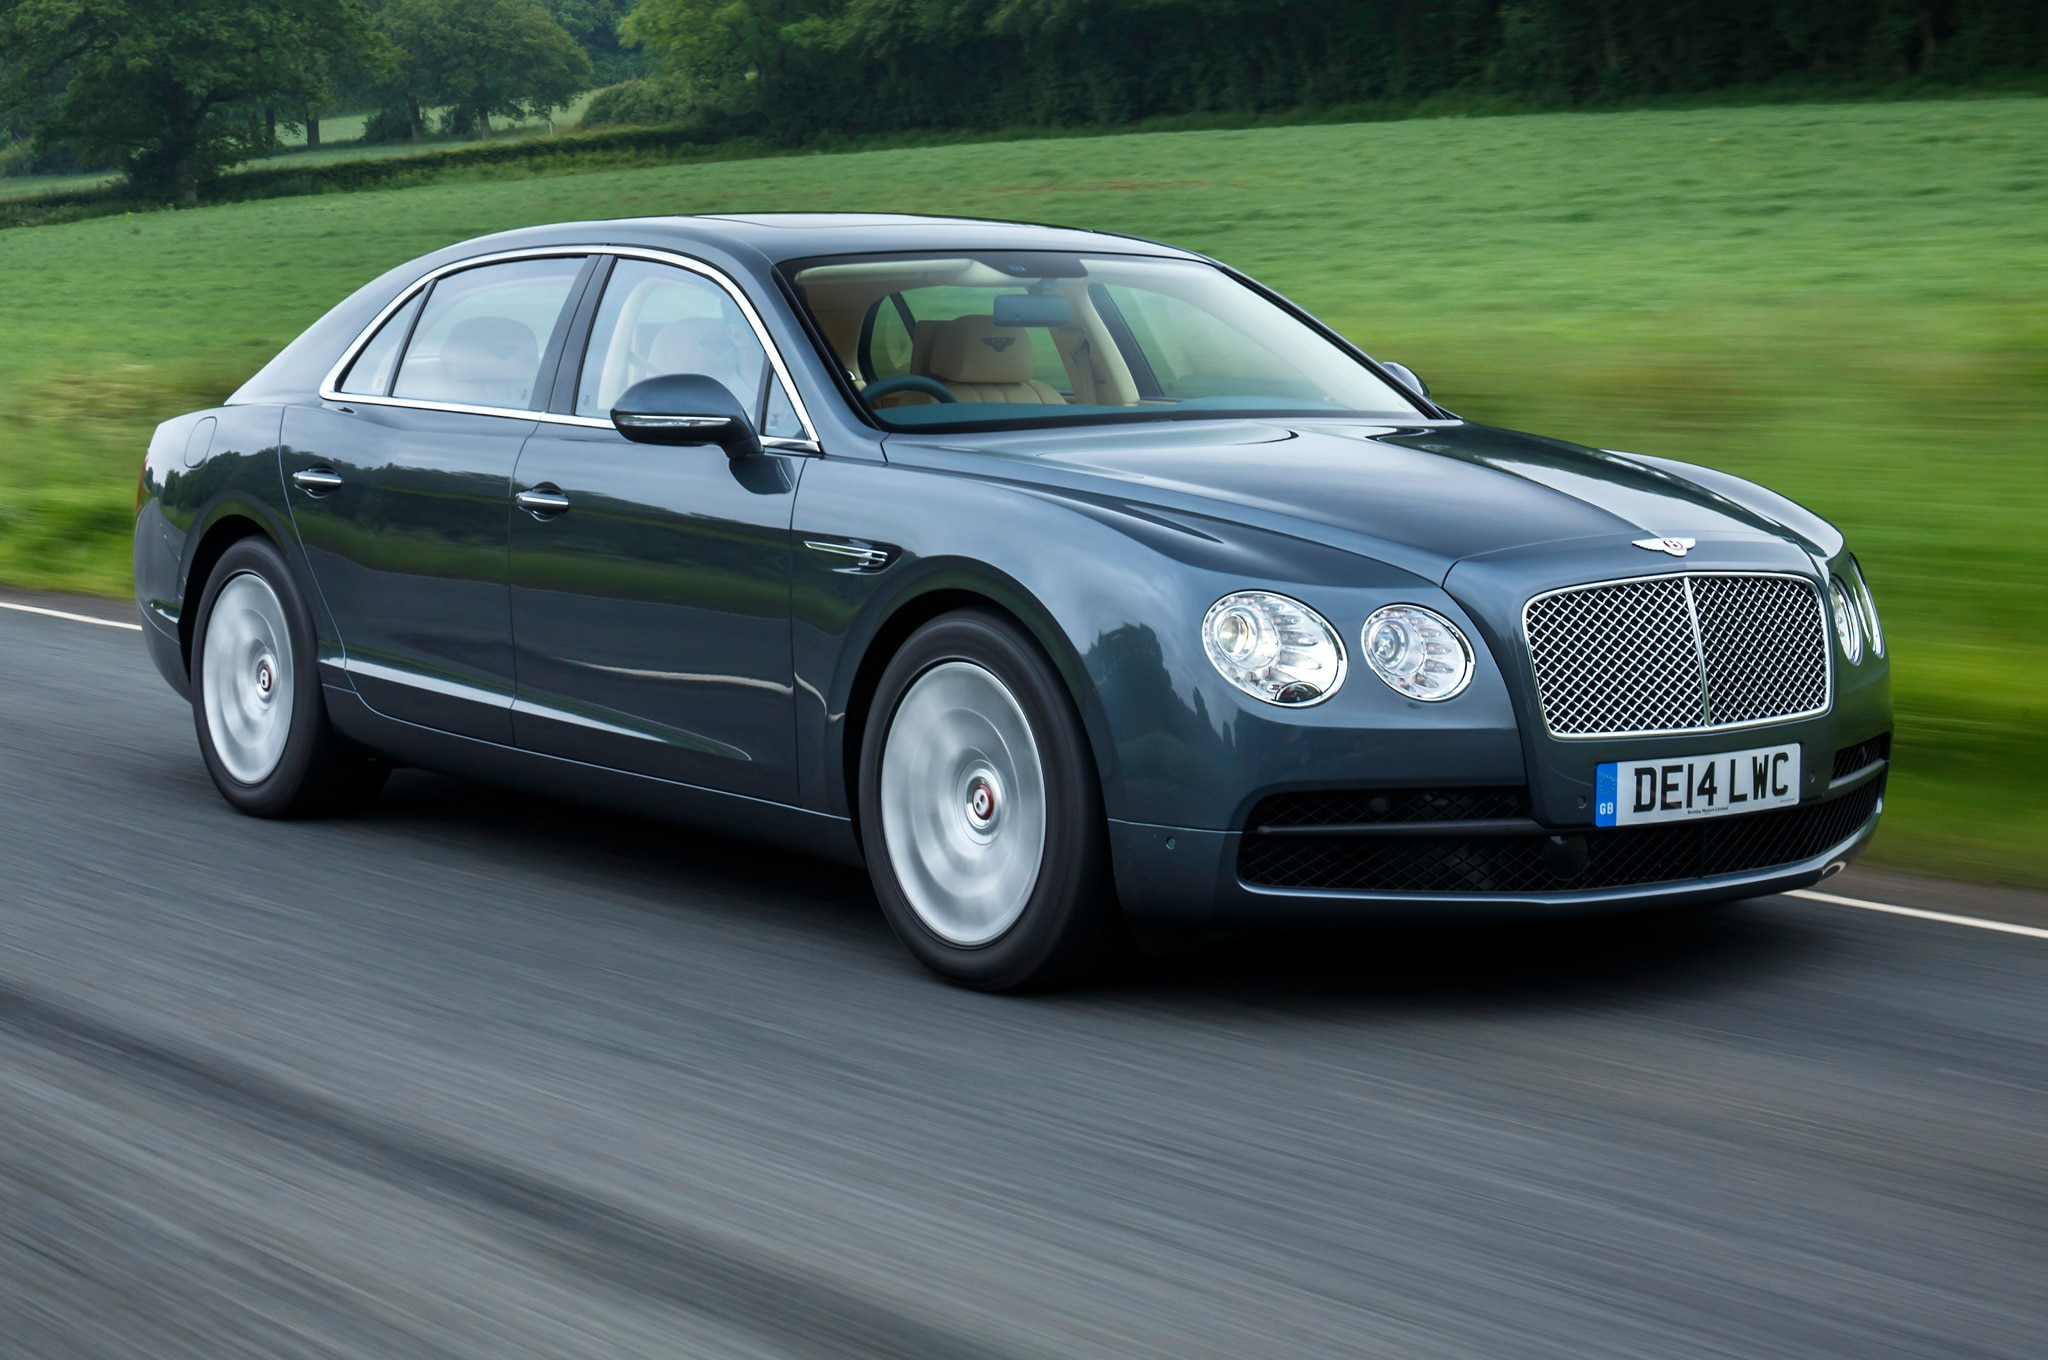 2015 Bentley Flying Spur V-8 Review - Automobile Magazine